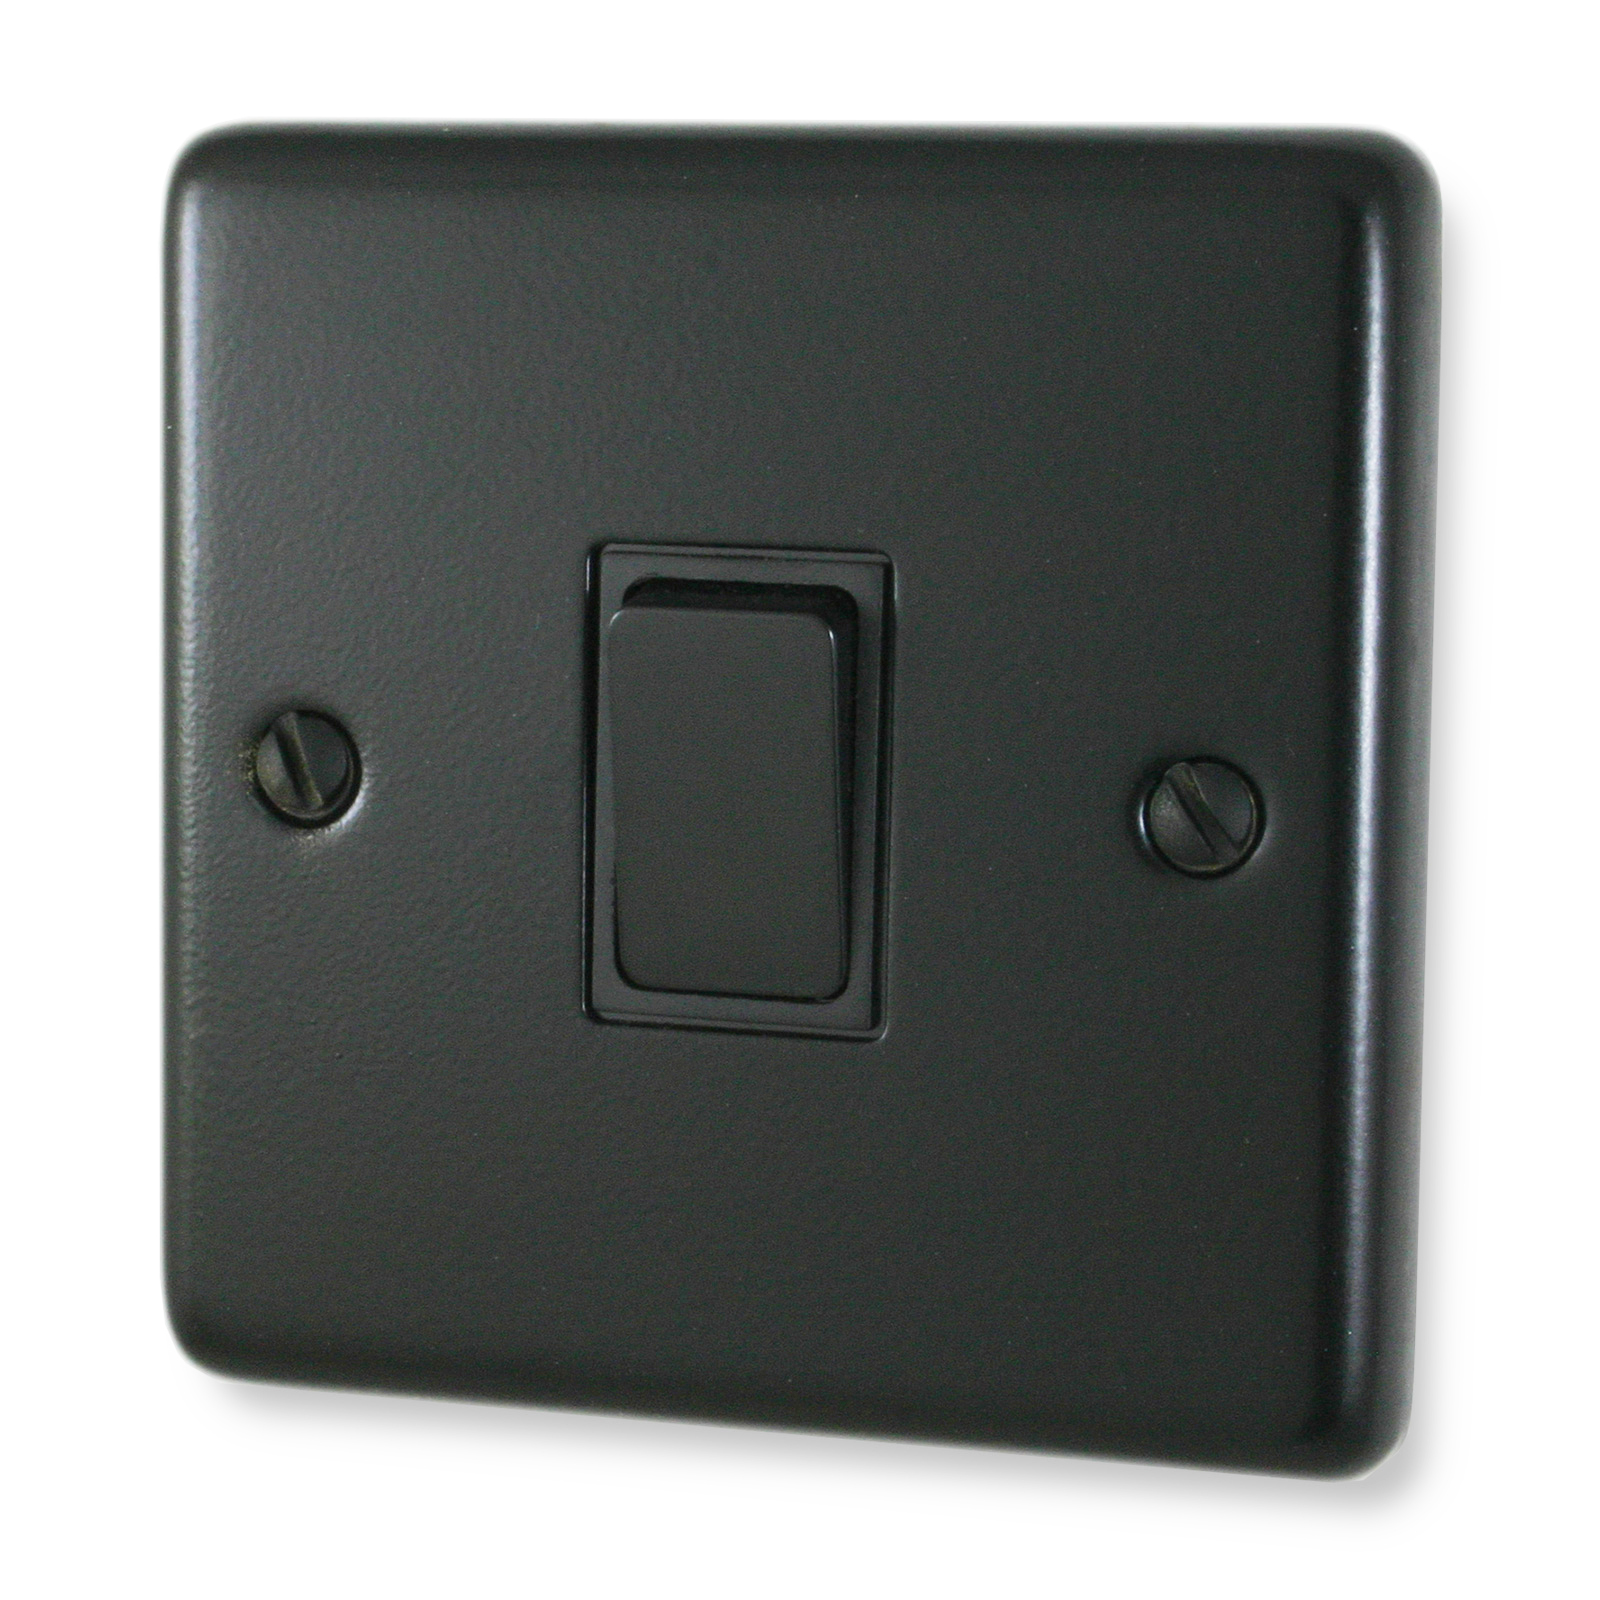 Matt Black Sockets and Switches